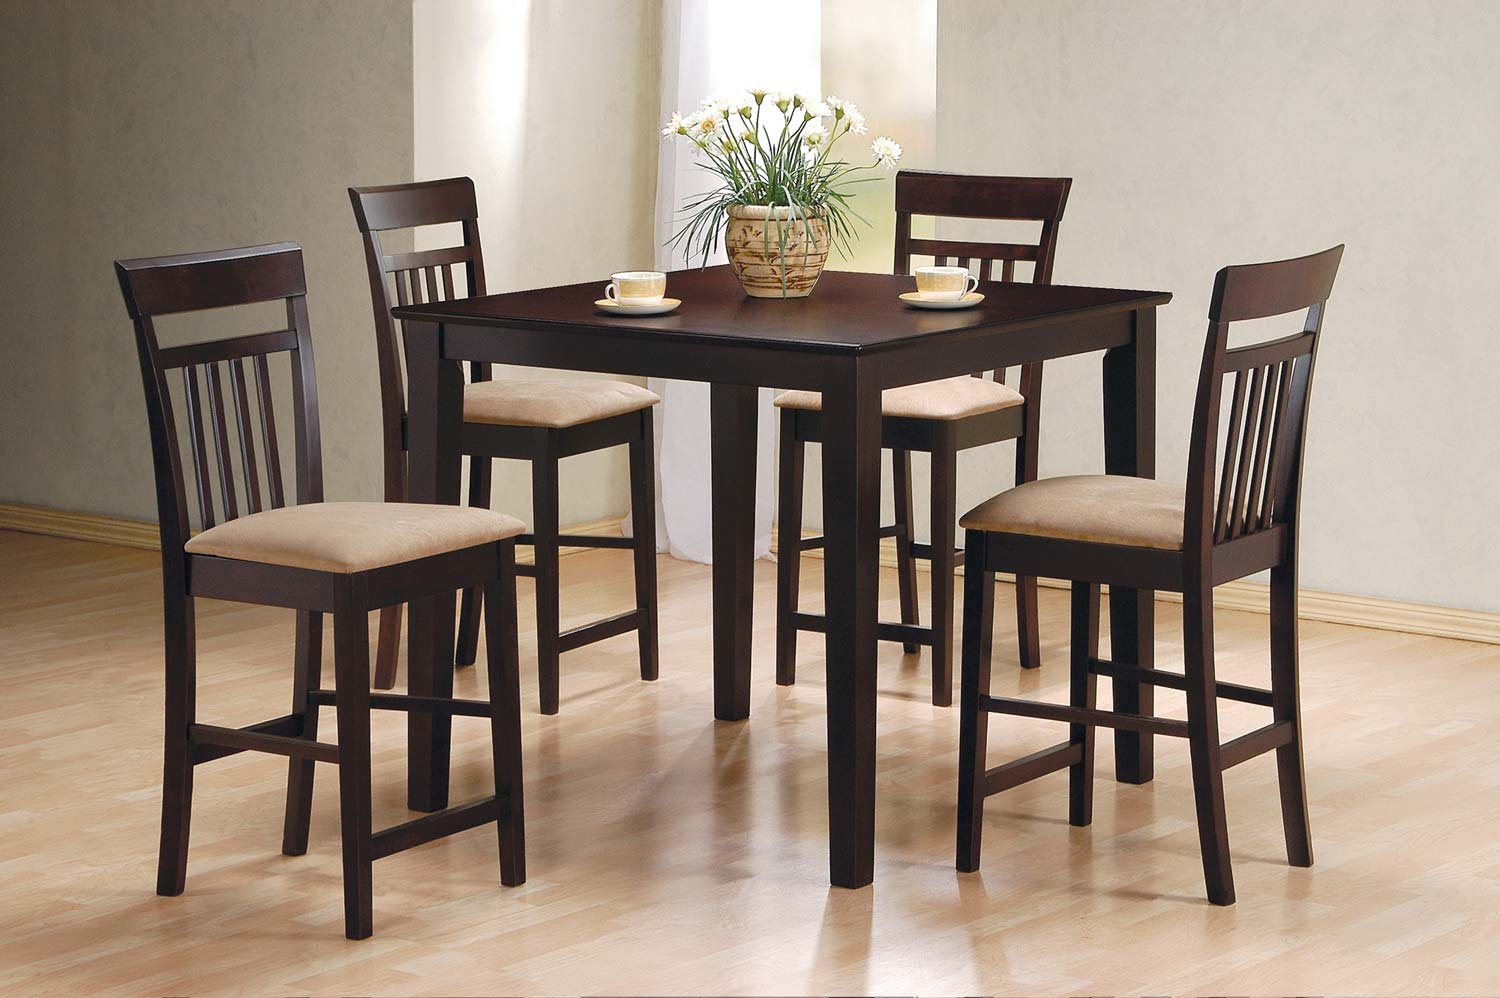 Coaster 150041 5PC Counter Height Dining Set   Cappuccino